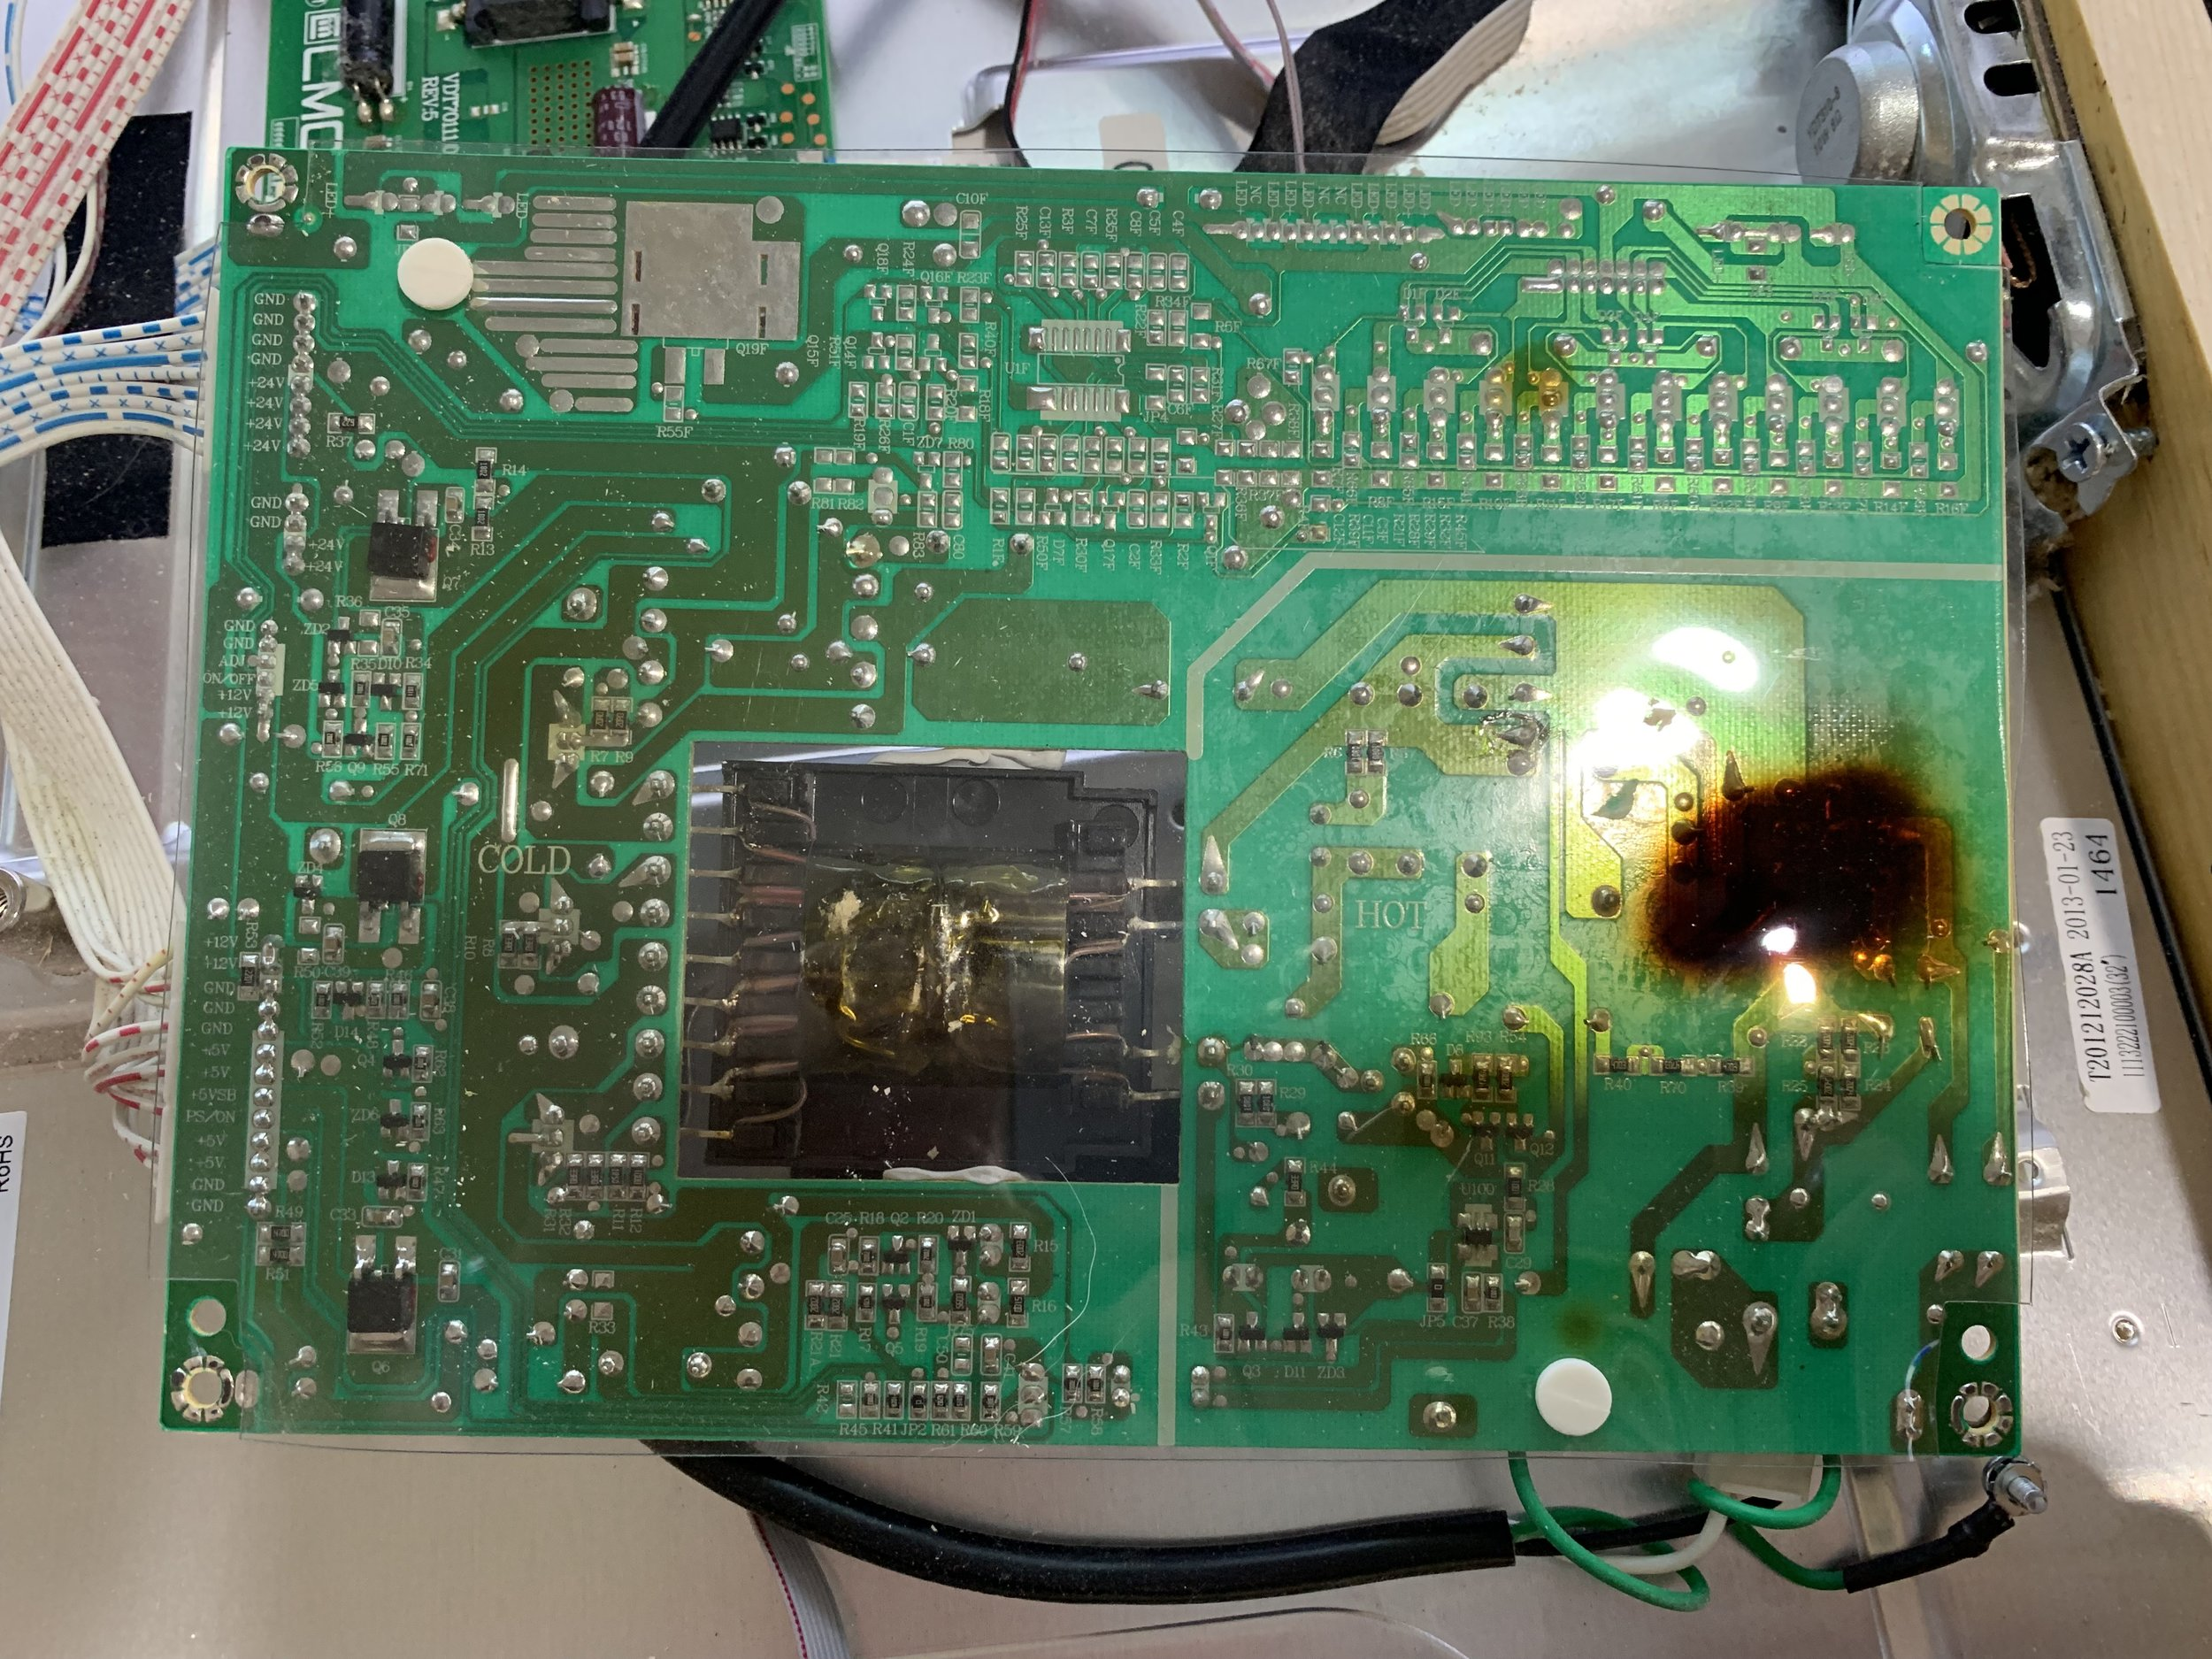 The large burn mark on the protective plastic shield.  Oddly the board itself was not marked.